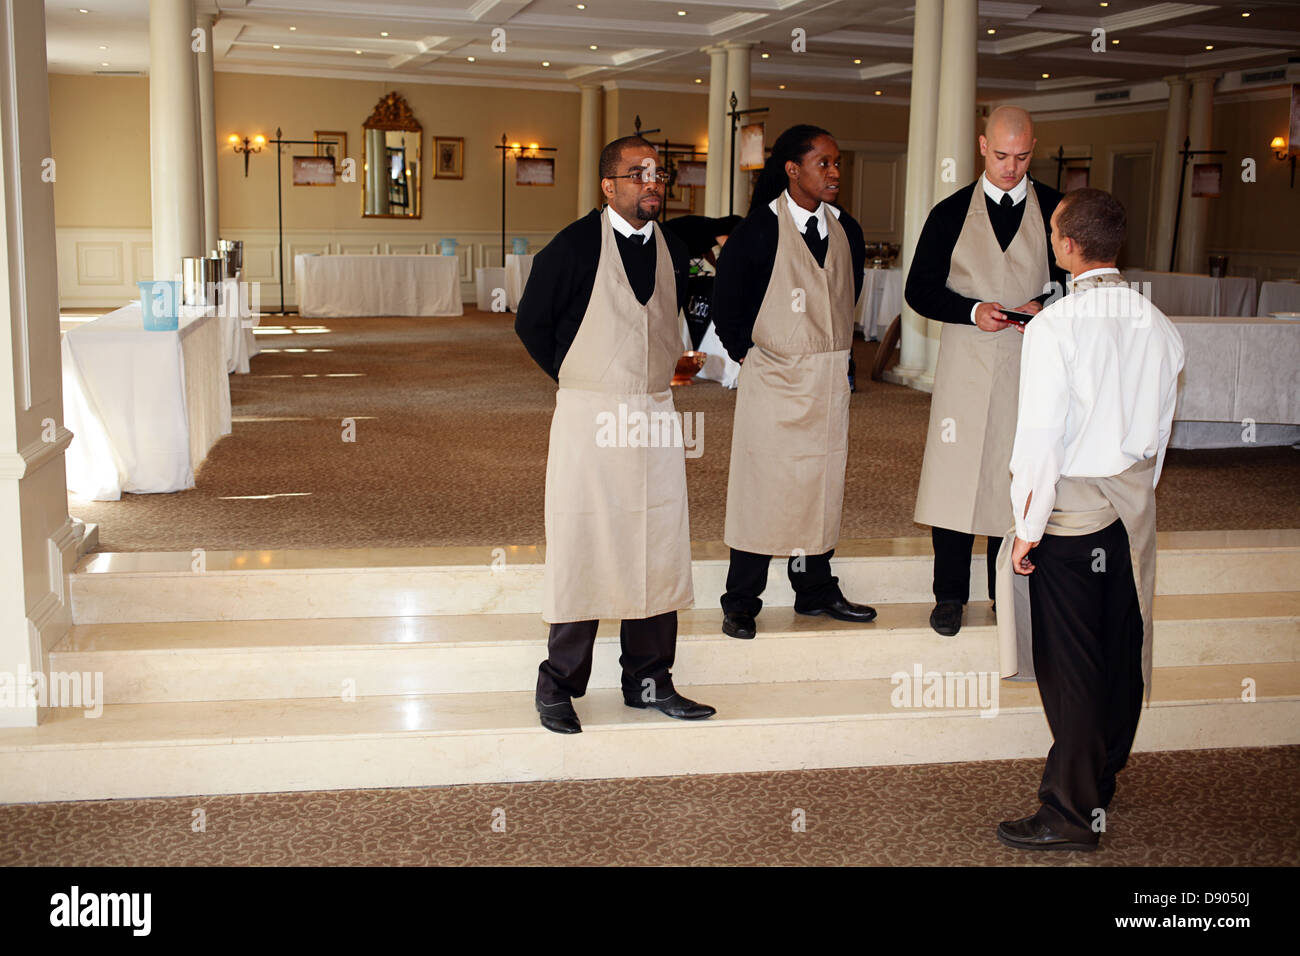 waiters ready for the guests - Stock Image